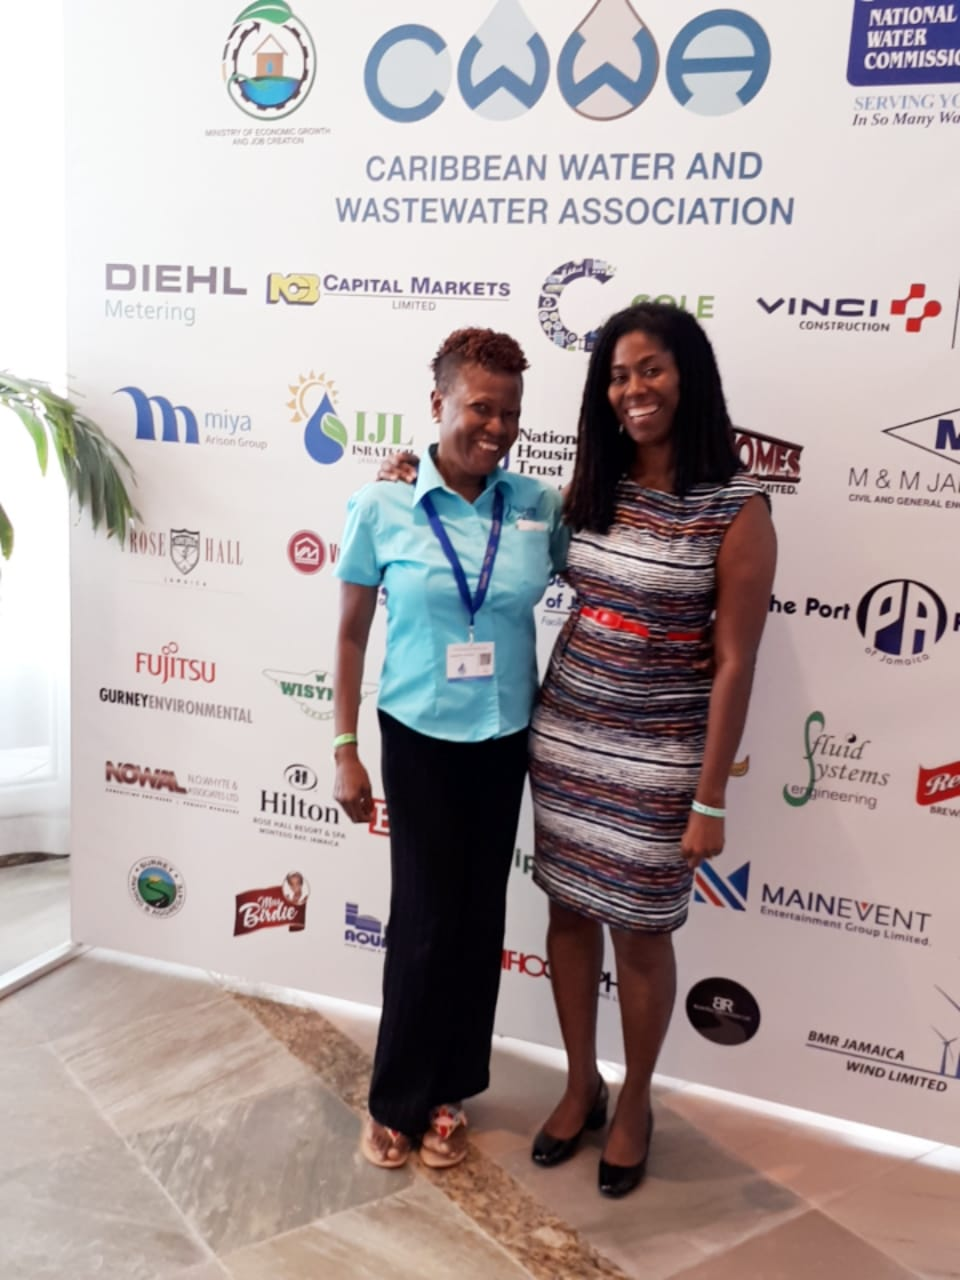 Water Project at CWWA Conference 2018-12